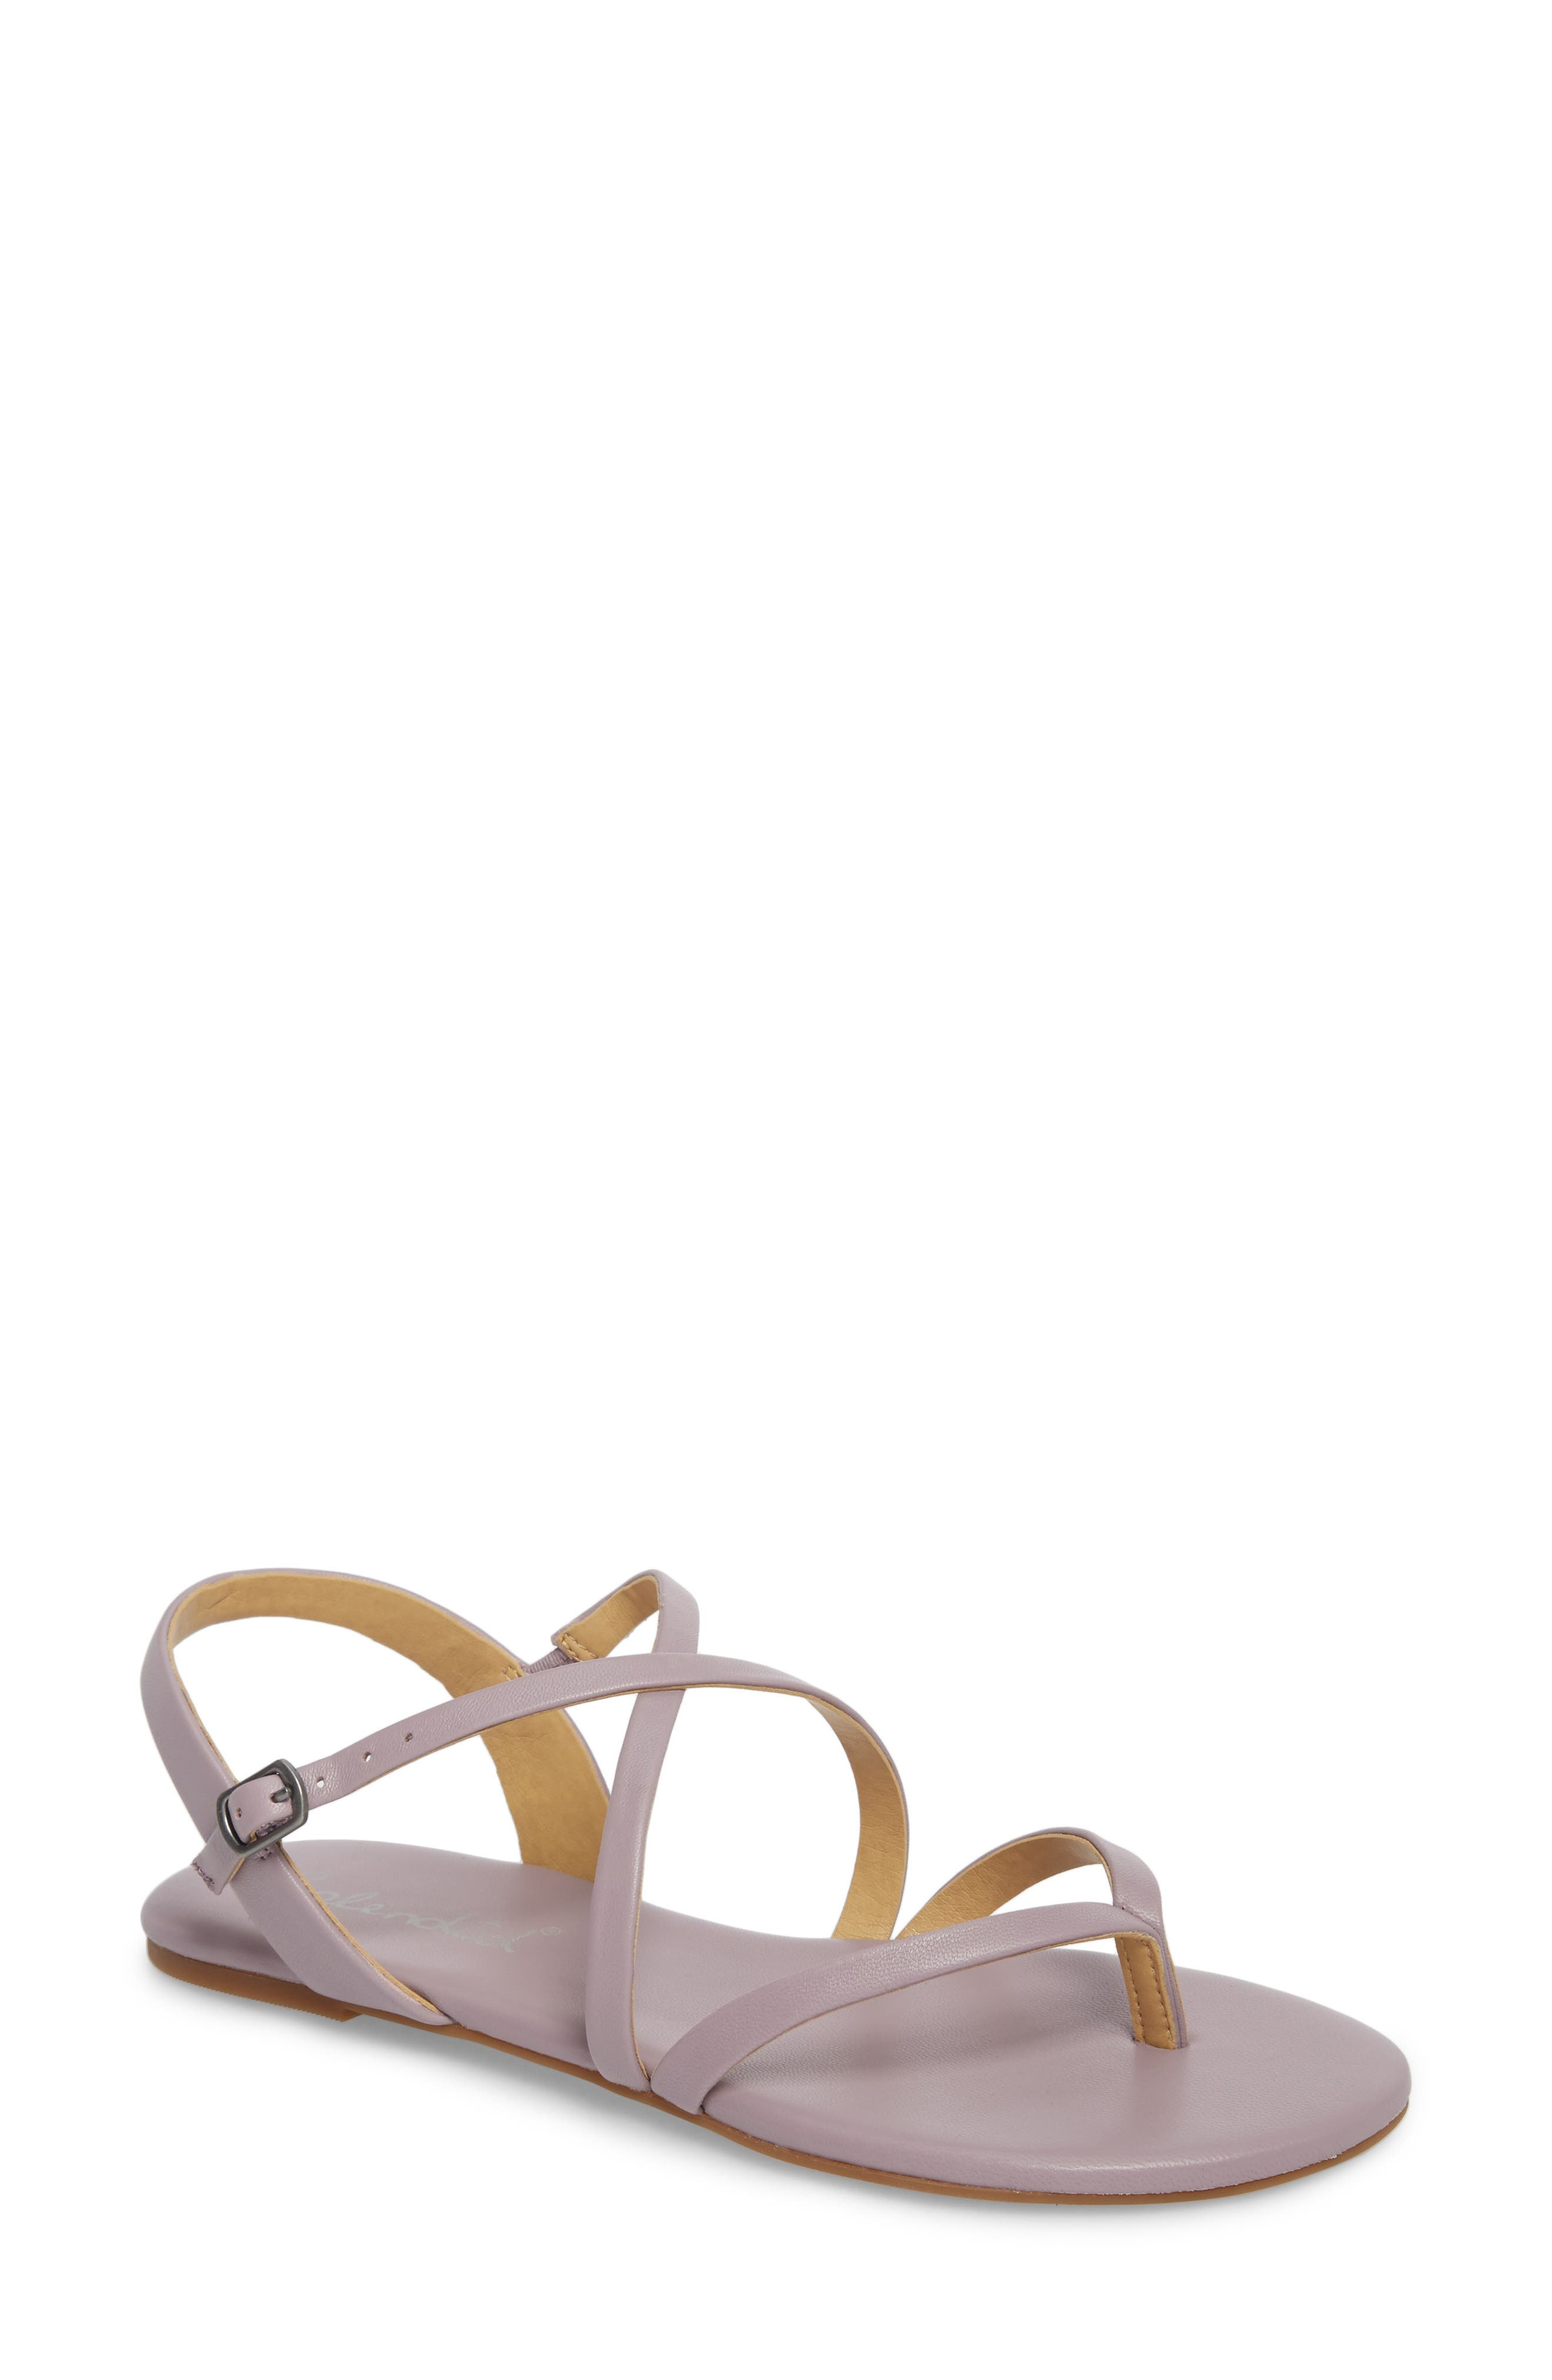 Brett Strappy Flat Sandal,                             Main thumbnail 1, color,                             WISTERIA LEATHER